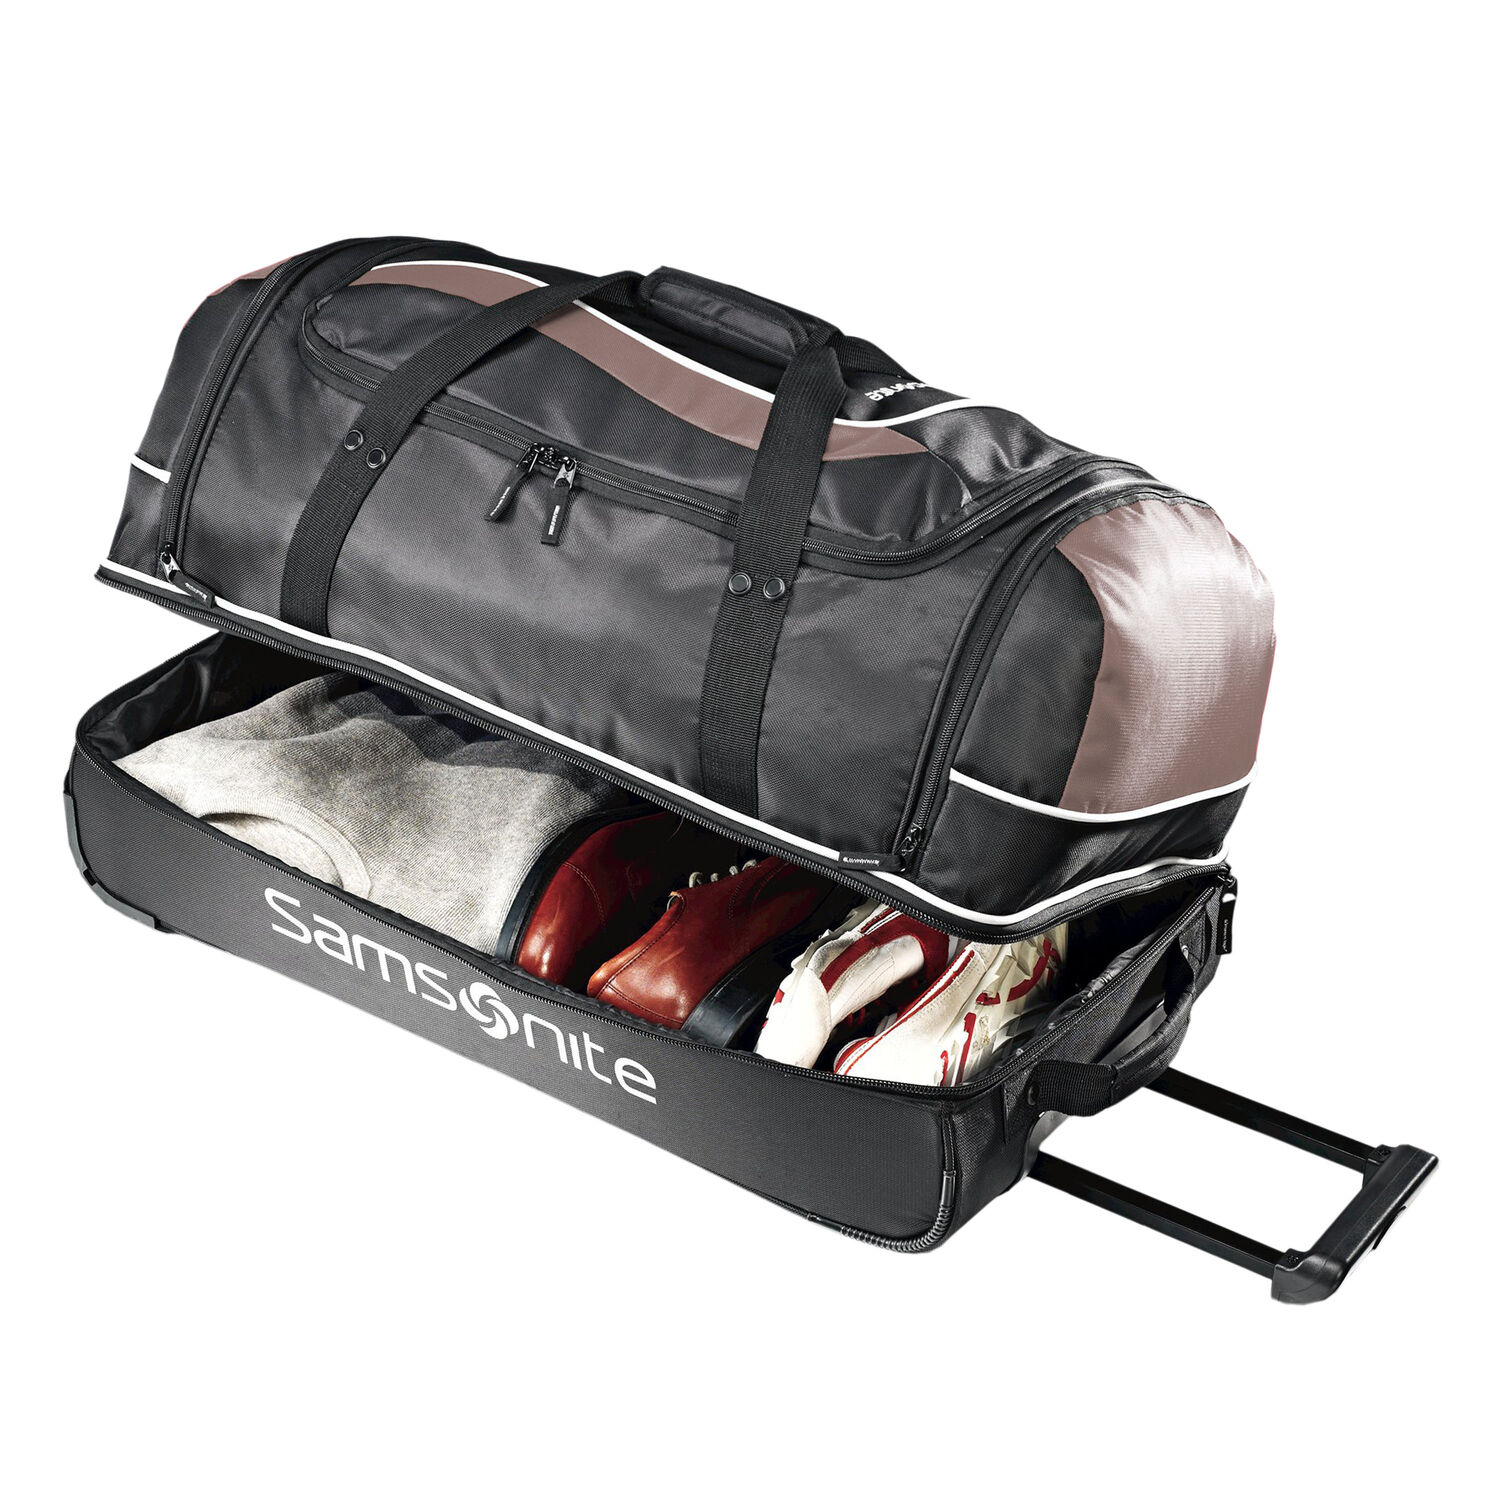 Samsonite Andante 28 quot  Drop Bottom Wheeled Duffle in the color ... 7cee4f3d82ed9